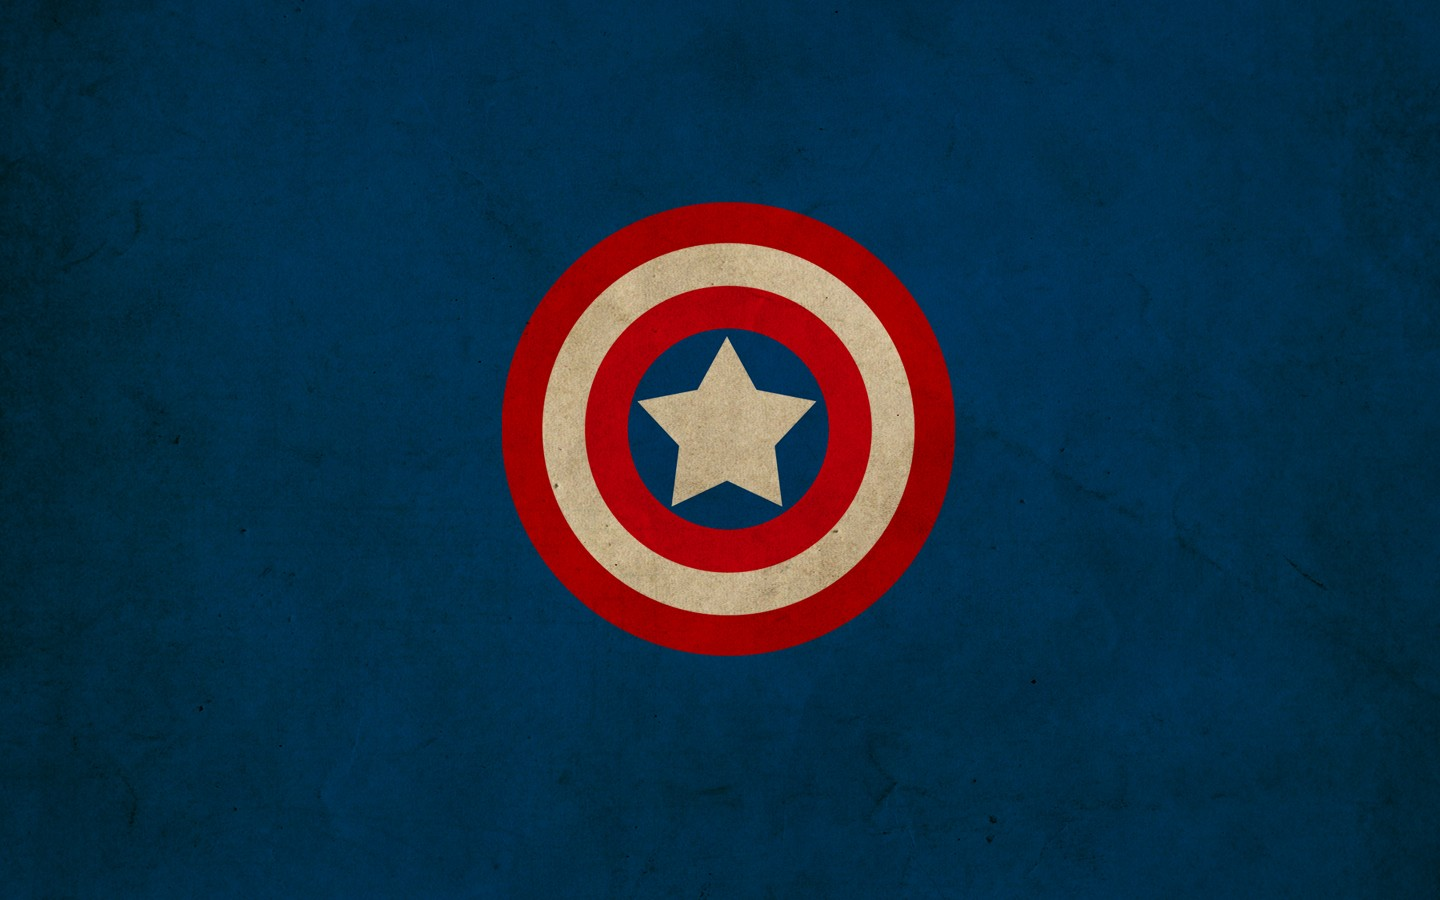 Captain America shield Marvel Comics logos Franck Grzyb wallpaper 1440x900